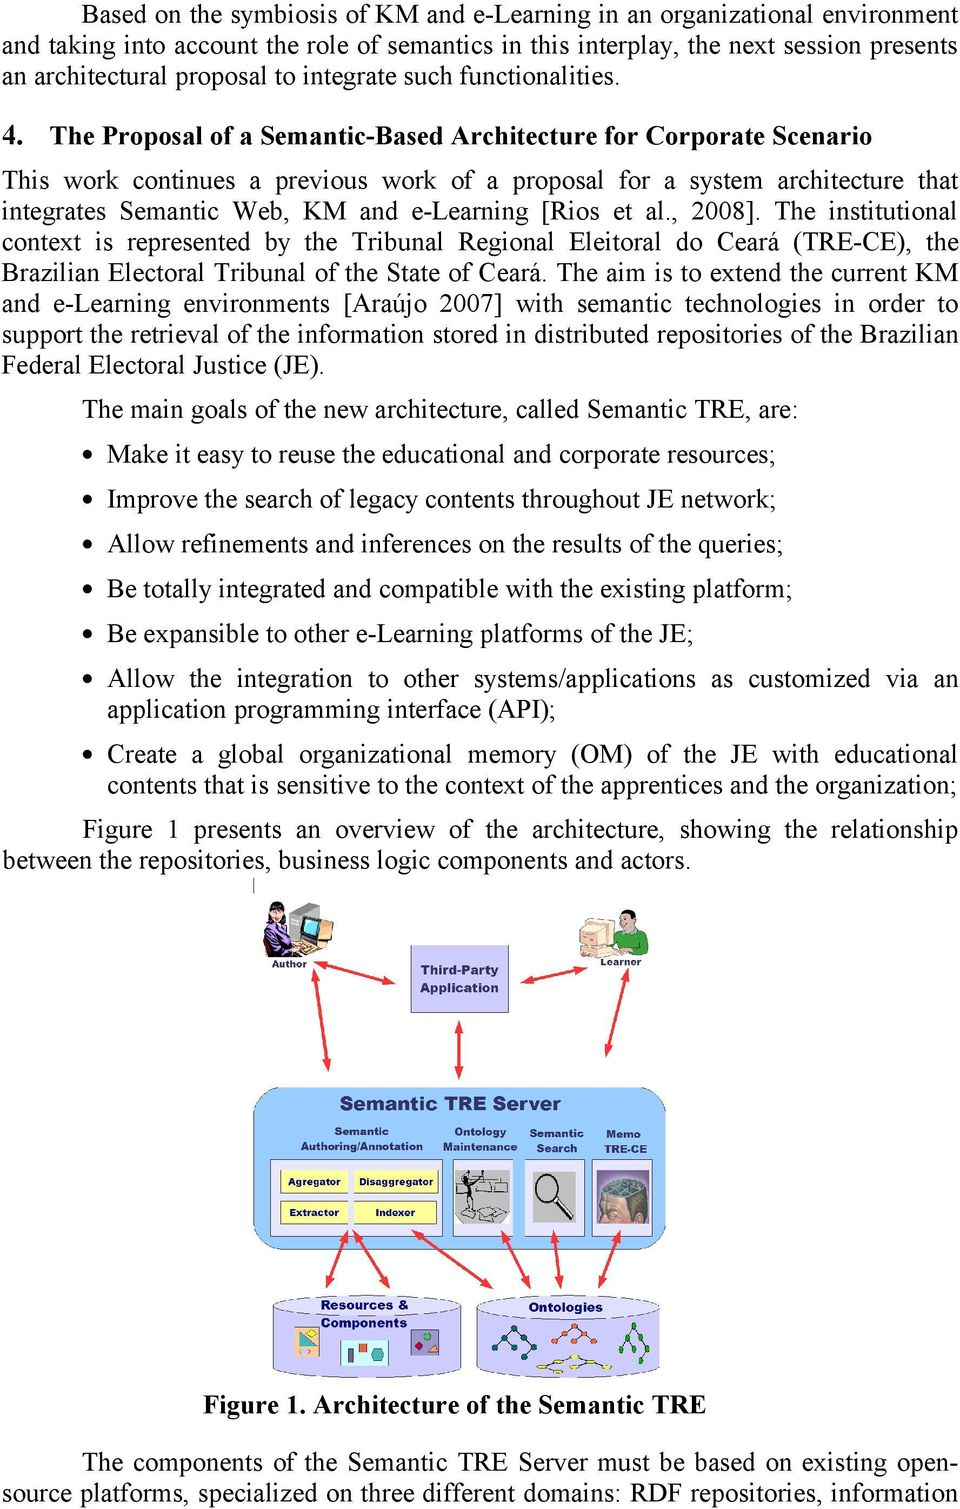 The Proposal of a Semantic-Based Architecture for Corporate Scenario This work continues a previous work of a proposal for a system architecture that integrates Semantic Web, KM and e-learning [Rios